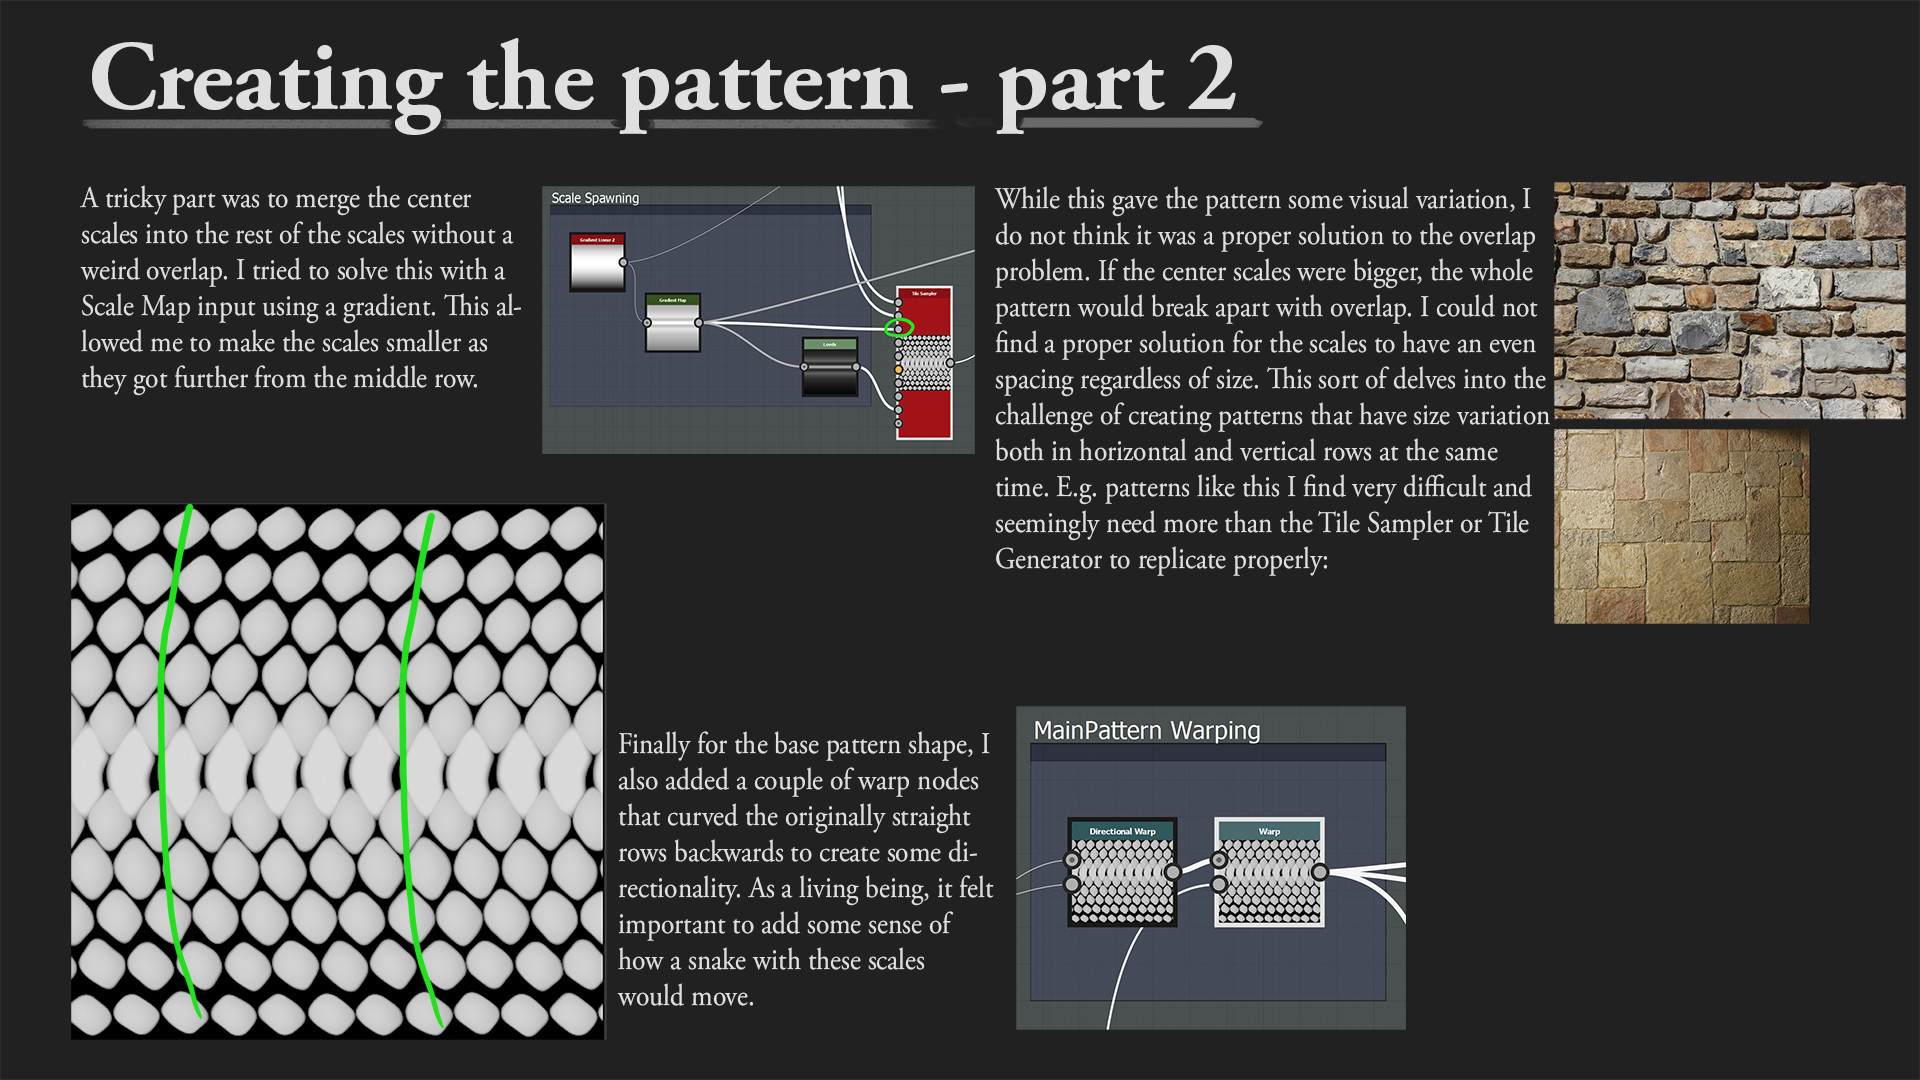 Olle norling creation of pattern part 2 smallersize